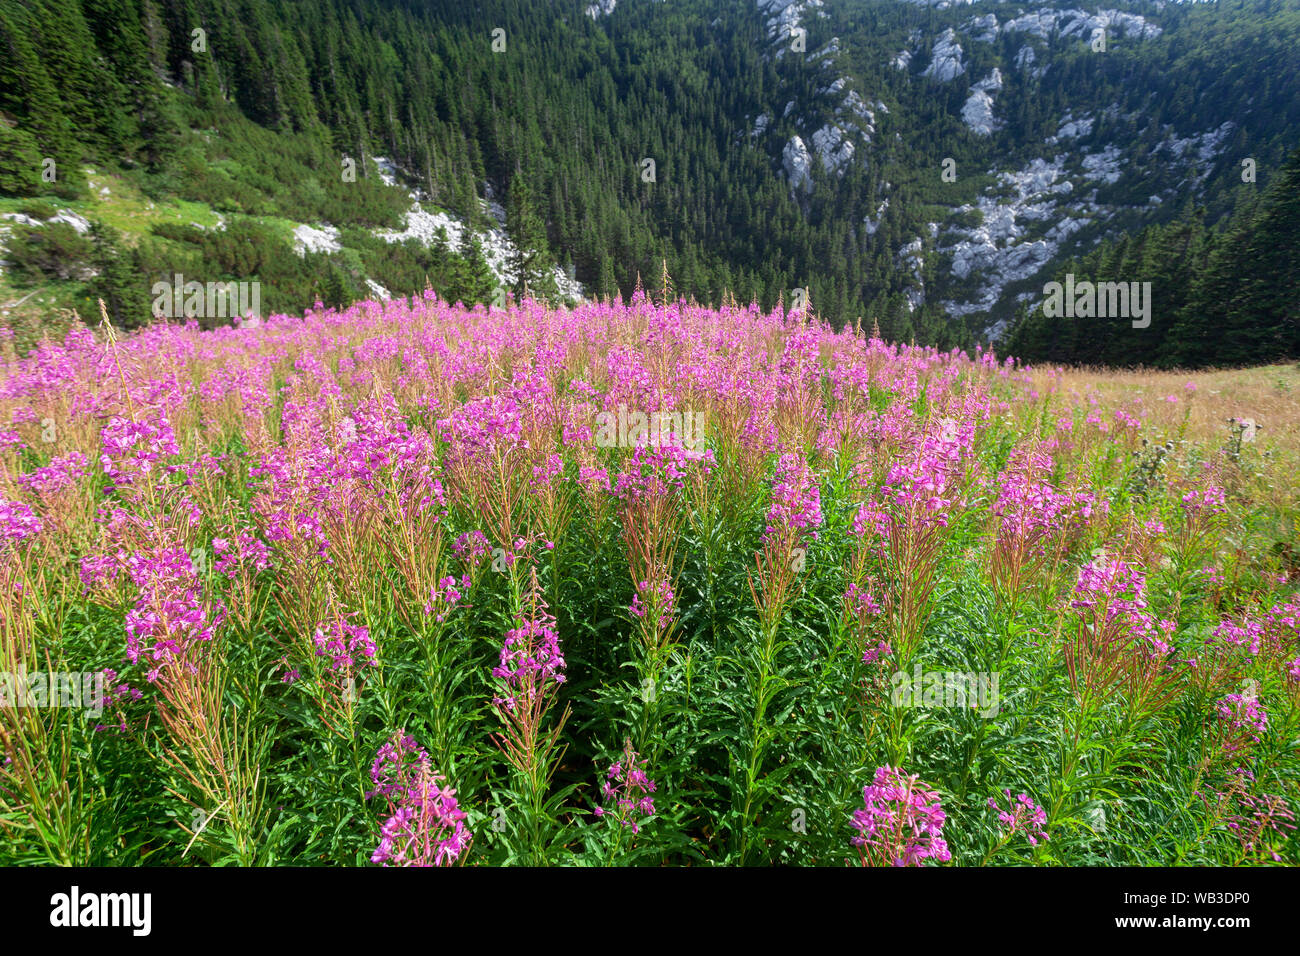 Wild flowers Chamaenerion angustifolium from Velebit mountain Stock Photo